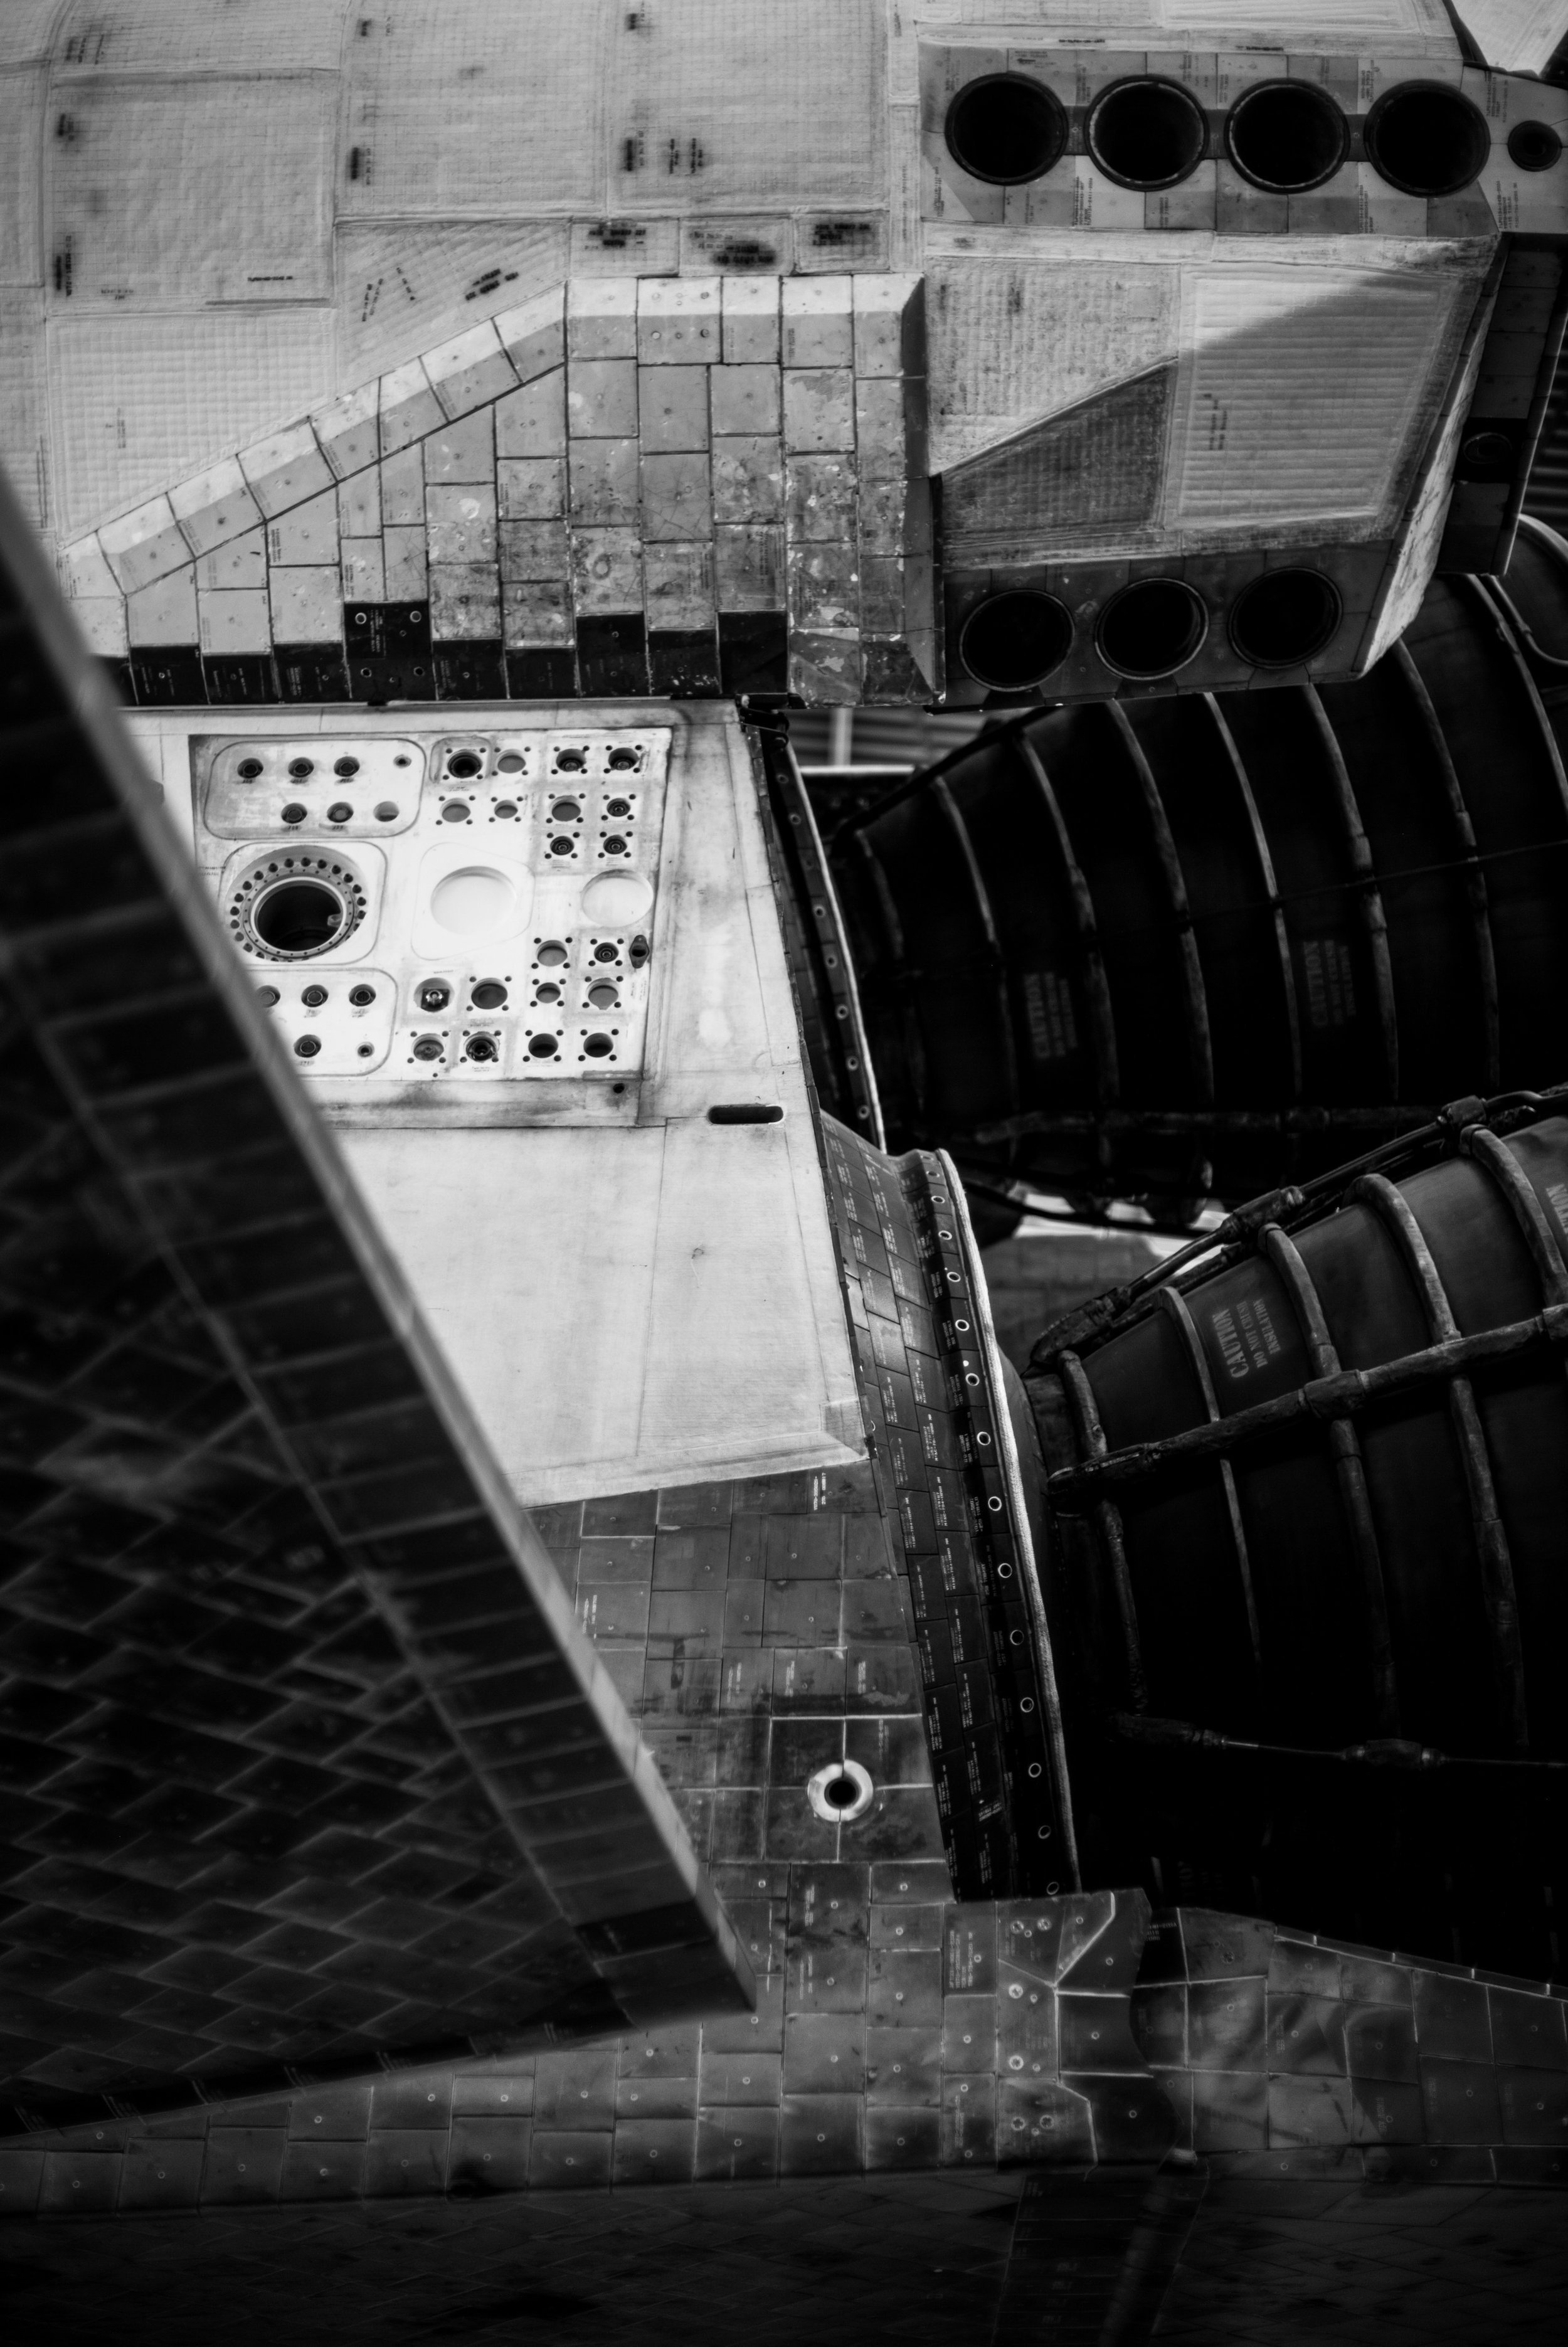 The back end of the shuttle. I got very close so the image is a little more abstract. The monochrom of this image really highlights the aesthetic imperfections of this machine.